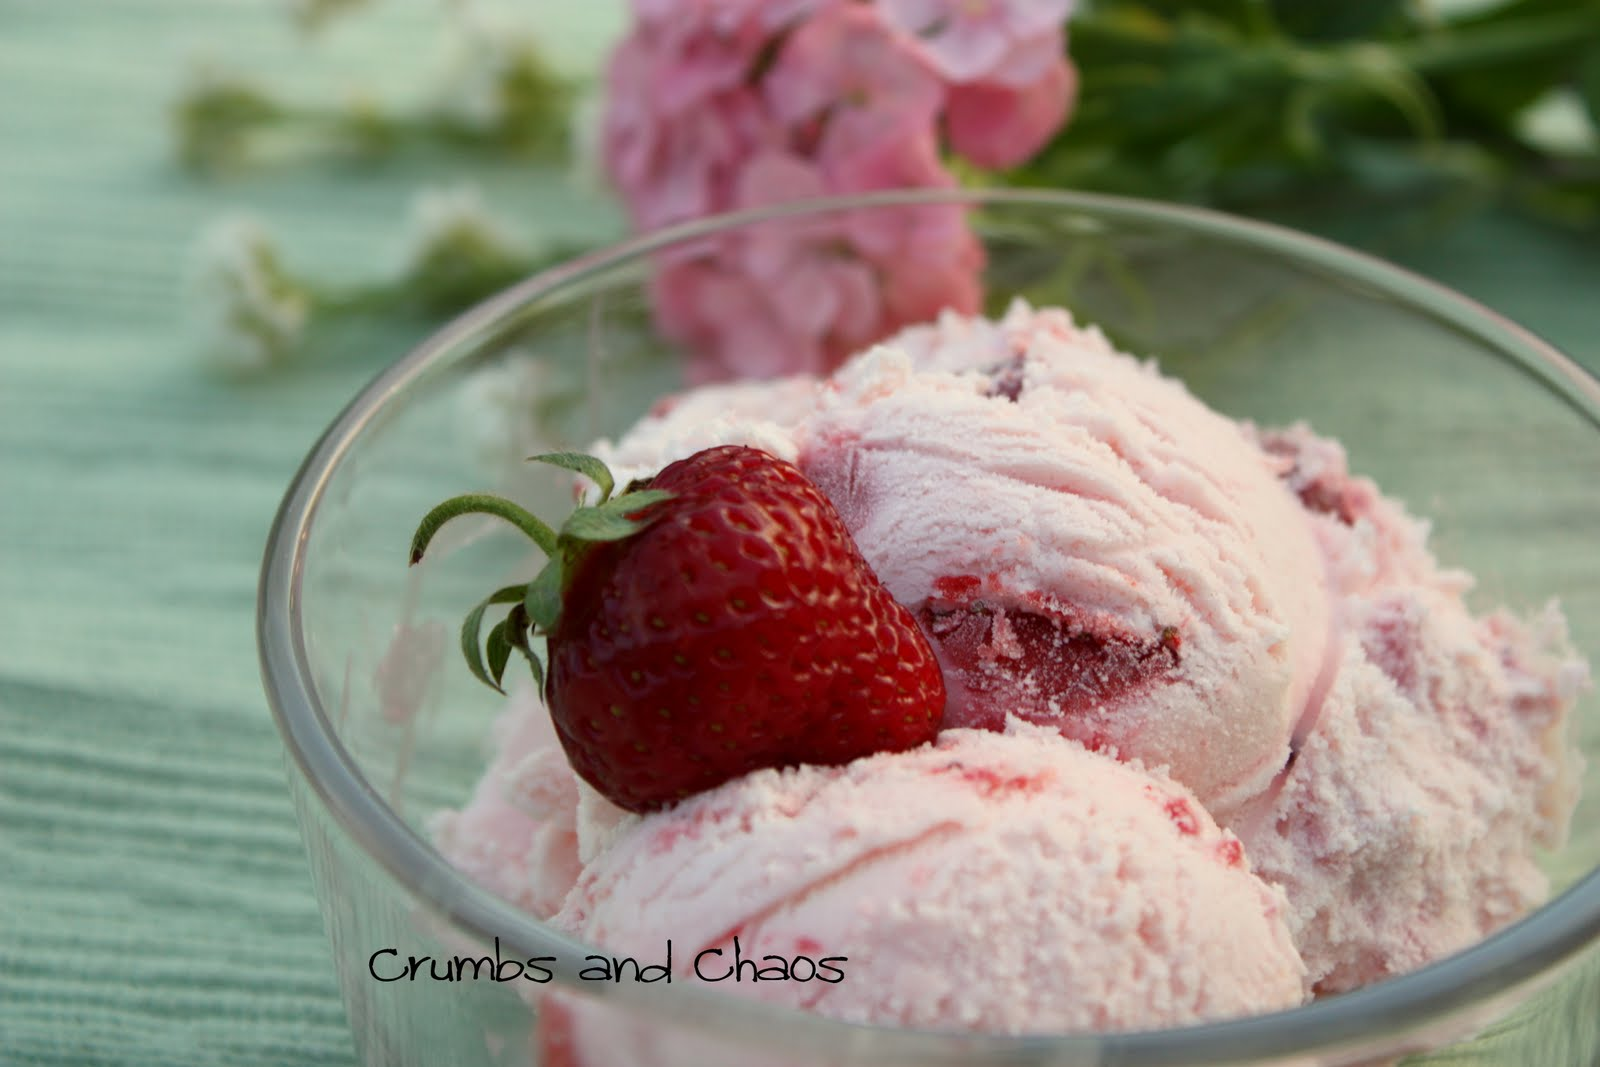 Fresh Strawberry Ice Cream - Crumbs and Chaos